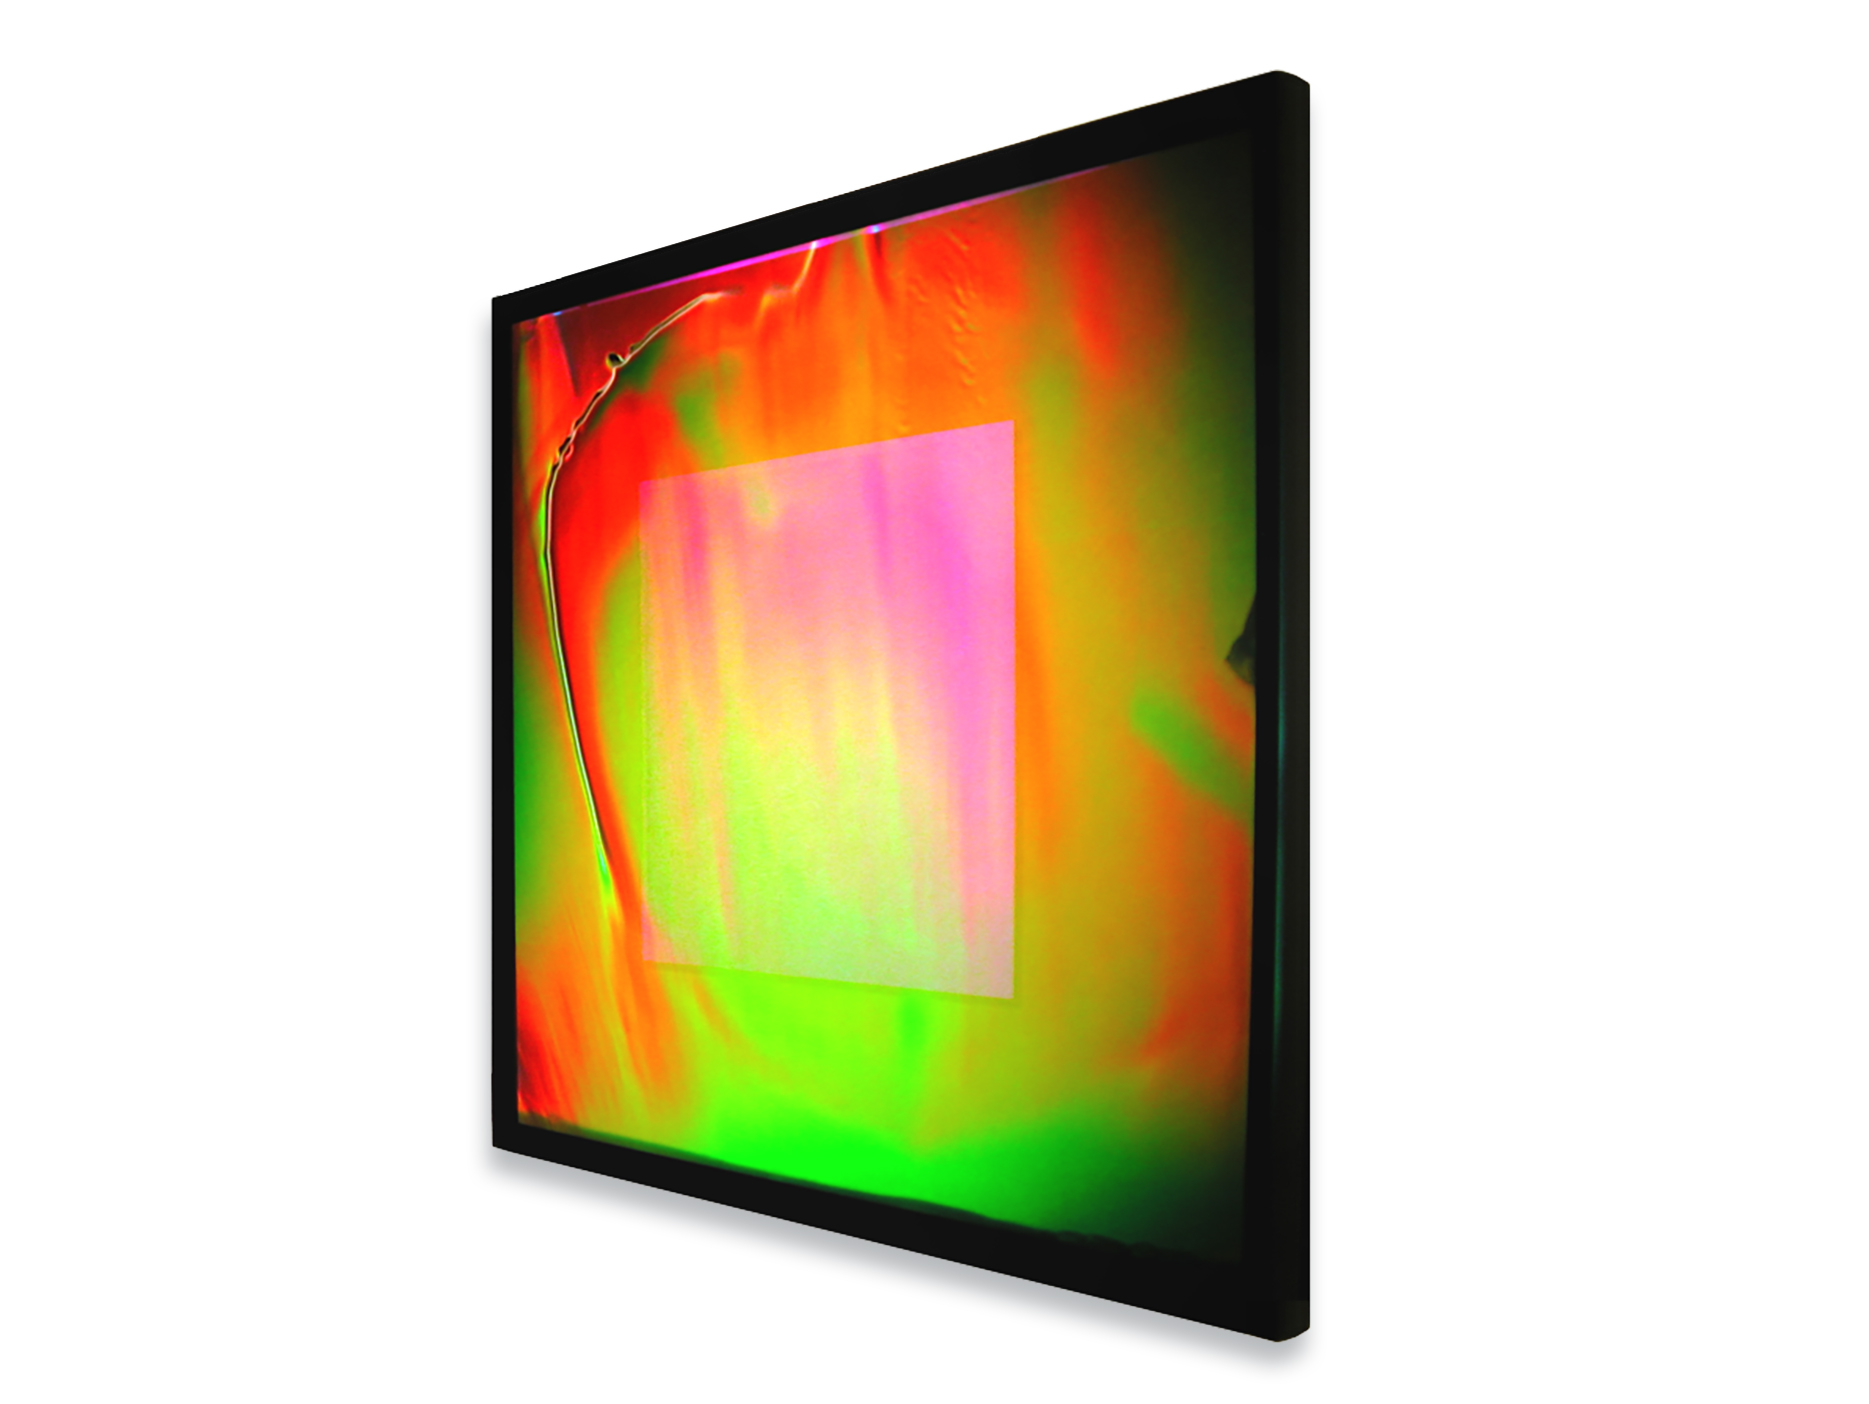 Quantum Immersion by August Muth, hologram laminated in glass, photo from OTA Contemporary